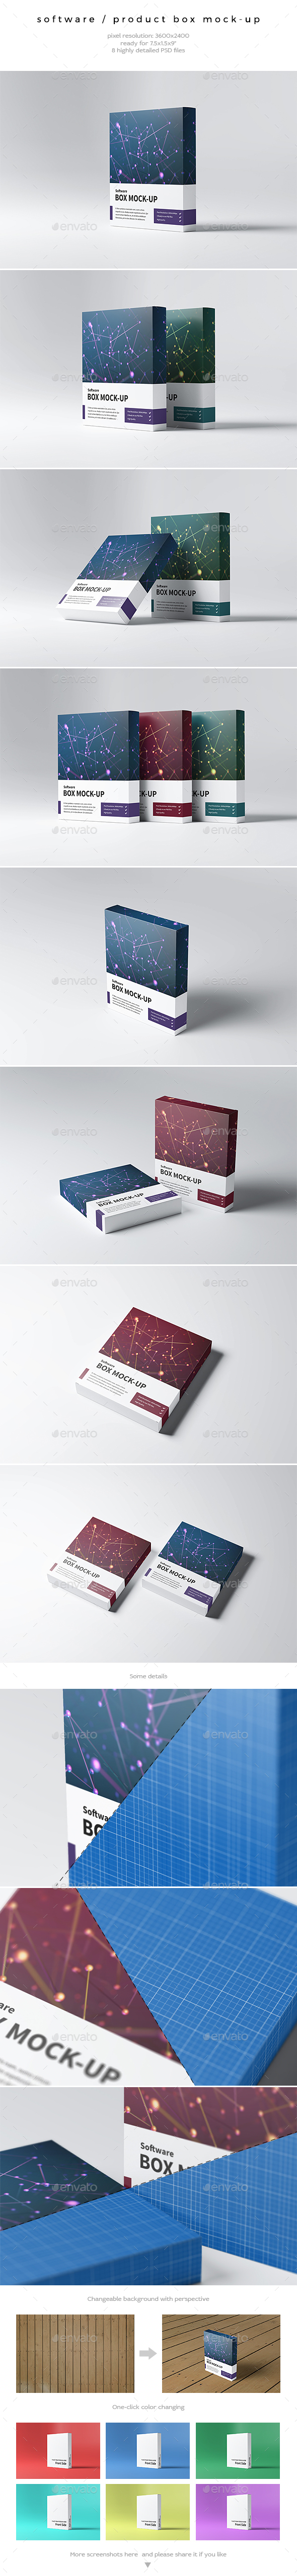 Software / Product Box Mock-Up